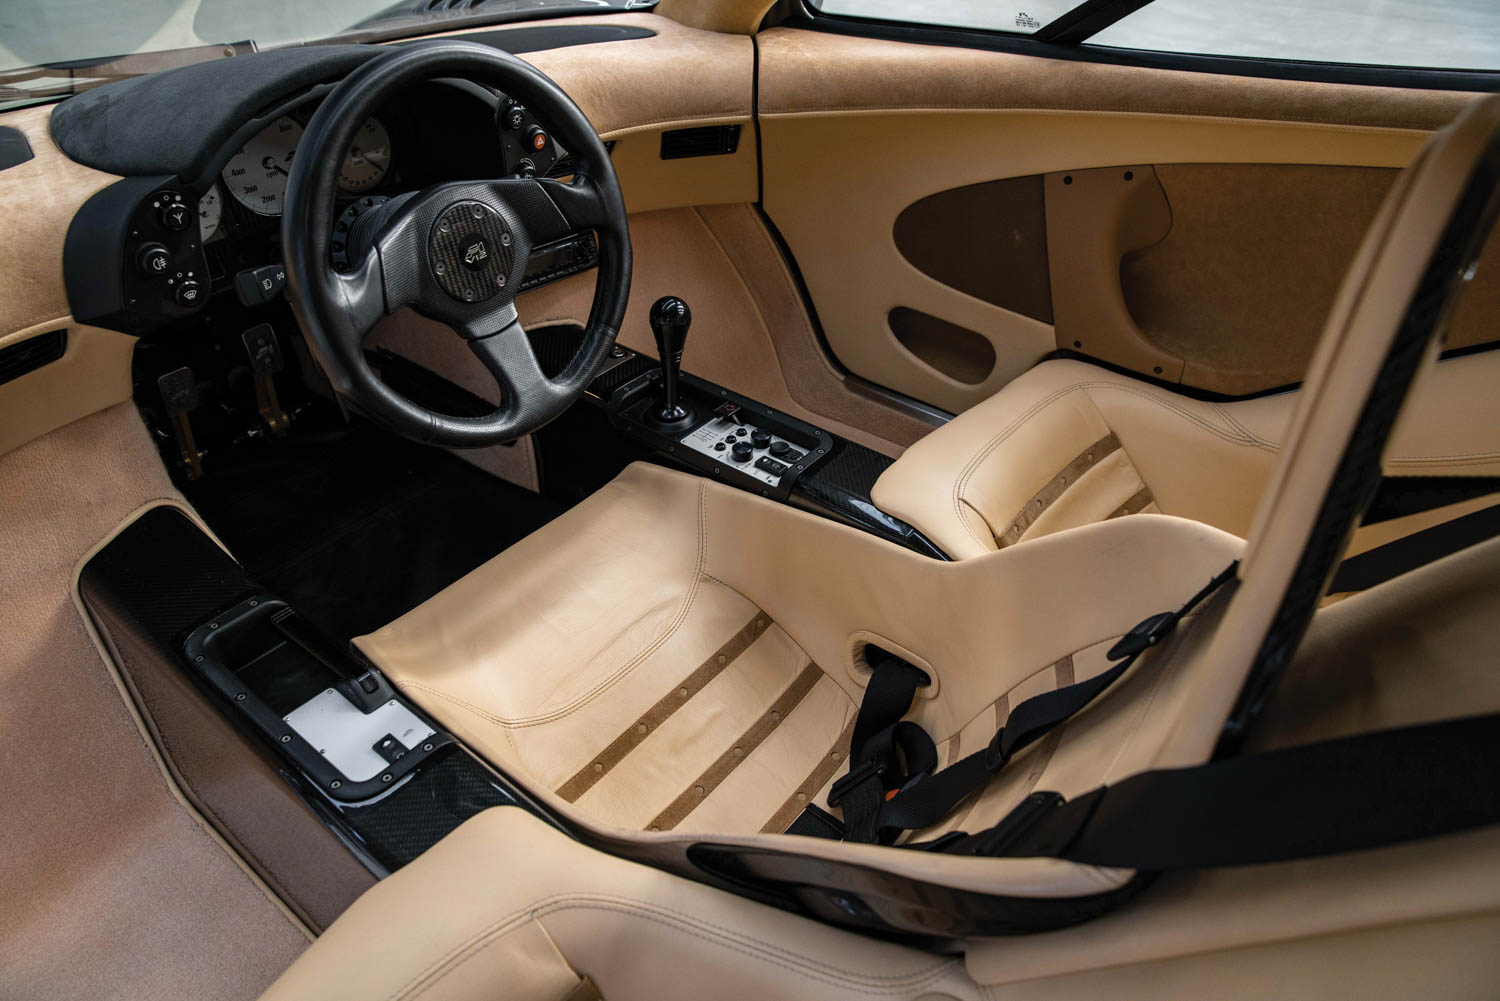 1994 McLaren F1 'LM-Specification' drivers seat